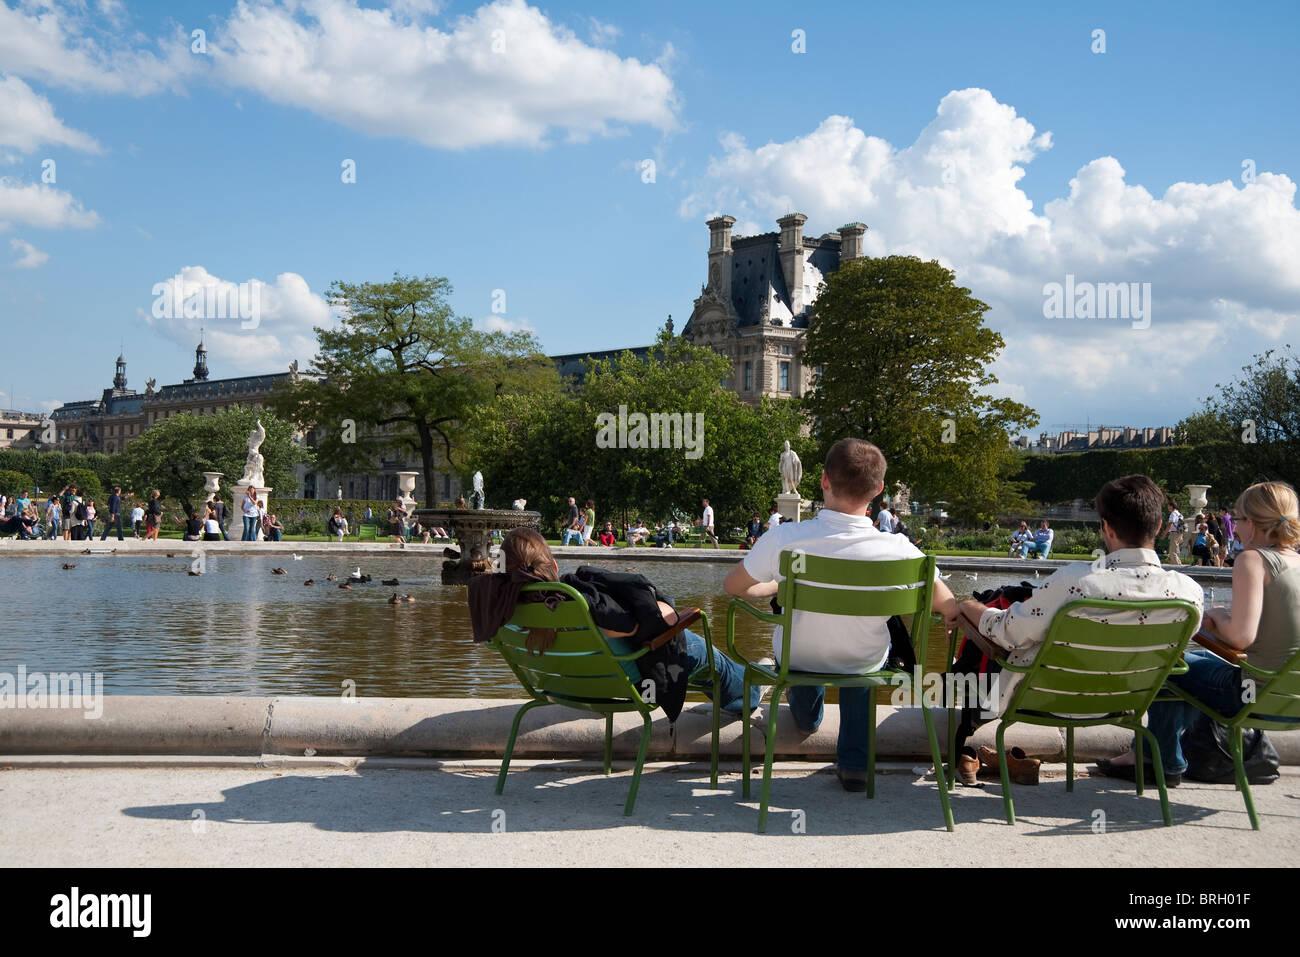 People in jardin des tuileries stock photo royalty free for Jardin des tuileries